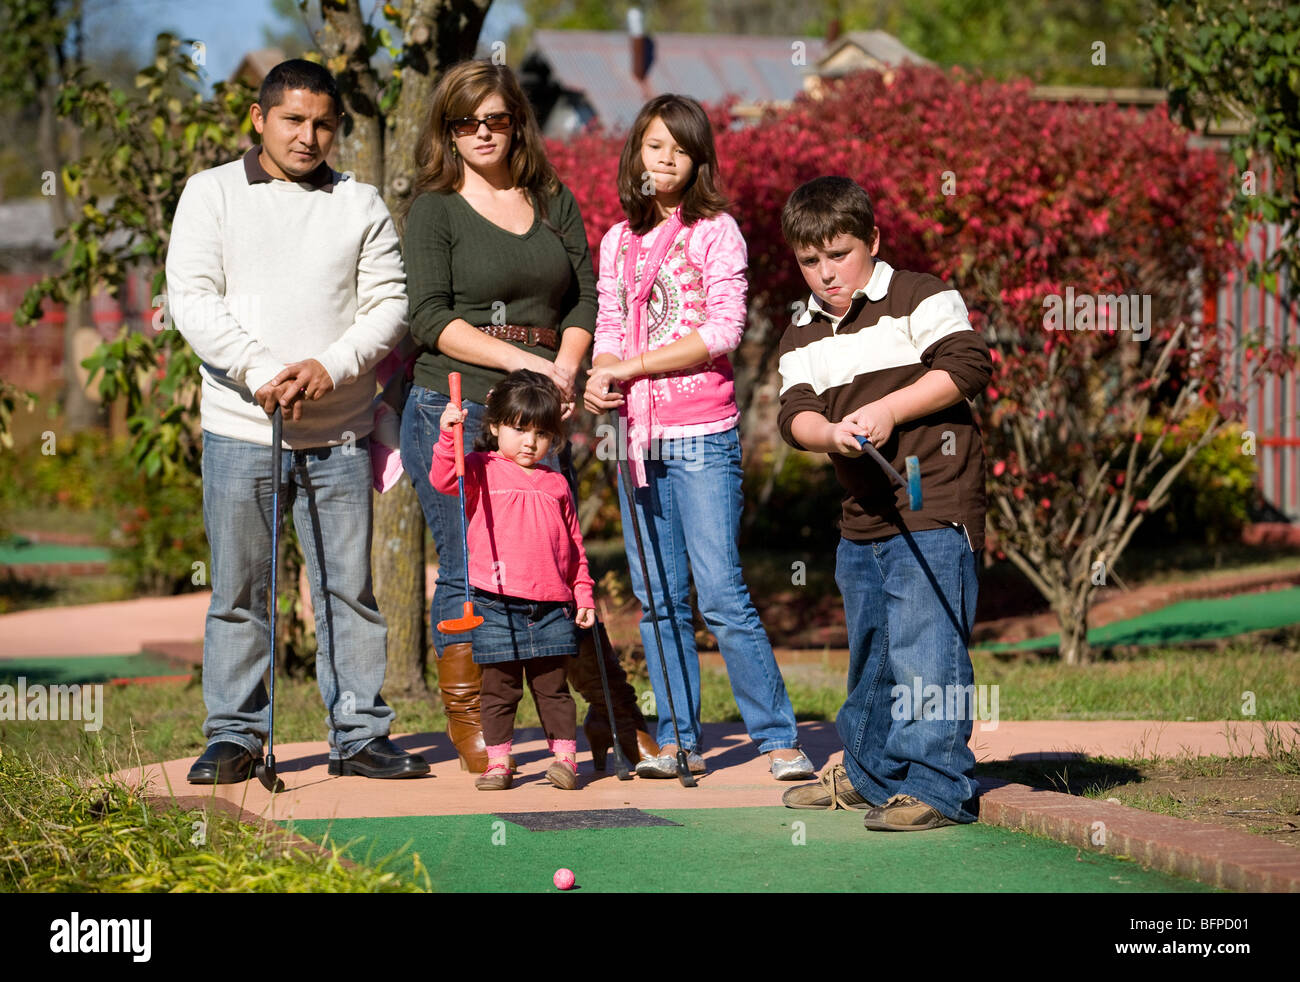 A mixed-race family participates in a round of miniature golf. Stock Photo